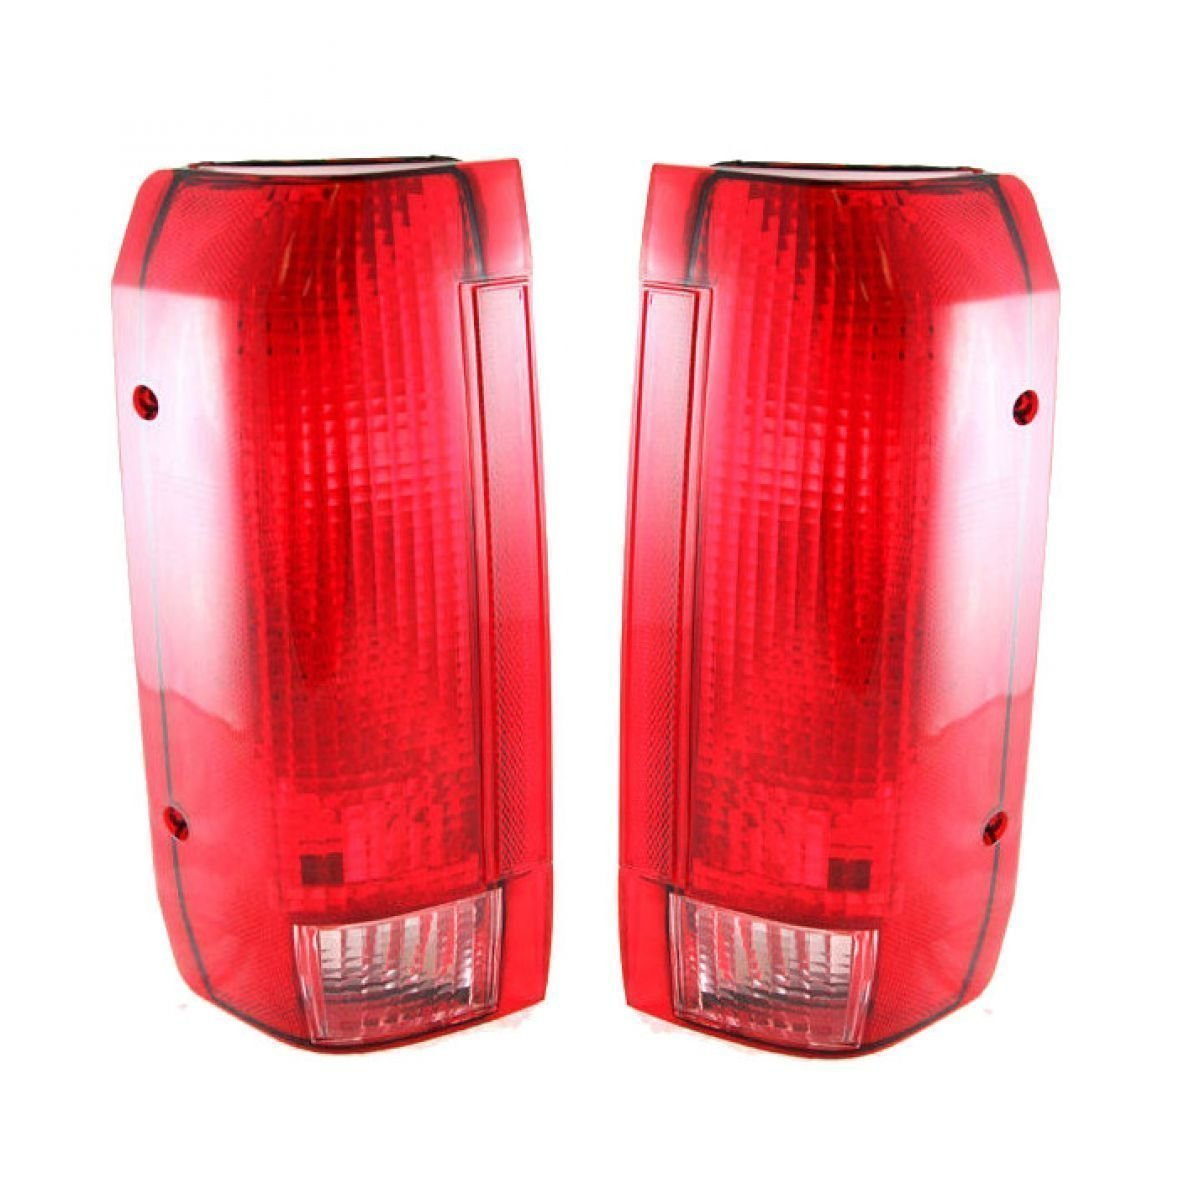 hight resolution of get quotations taillights taillamps rear brake lights pair set for ford f series truck